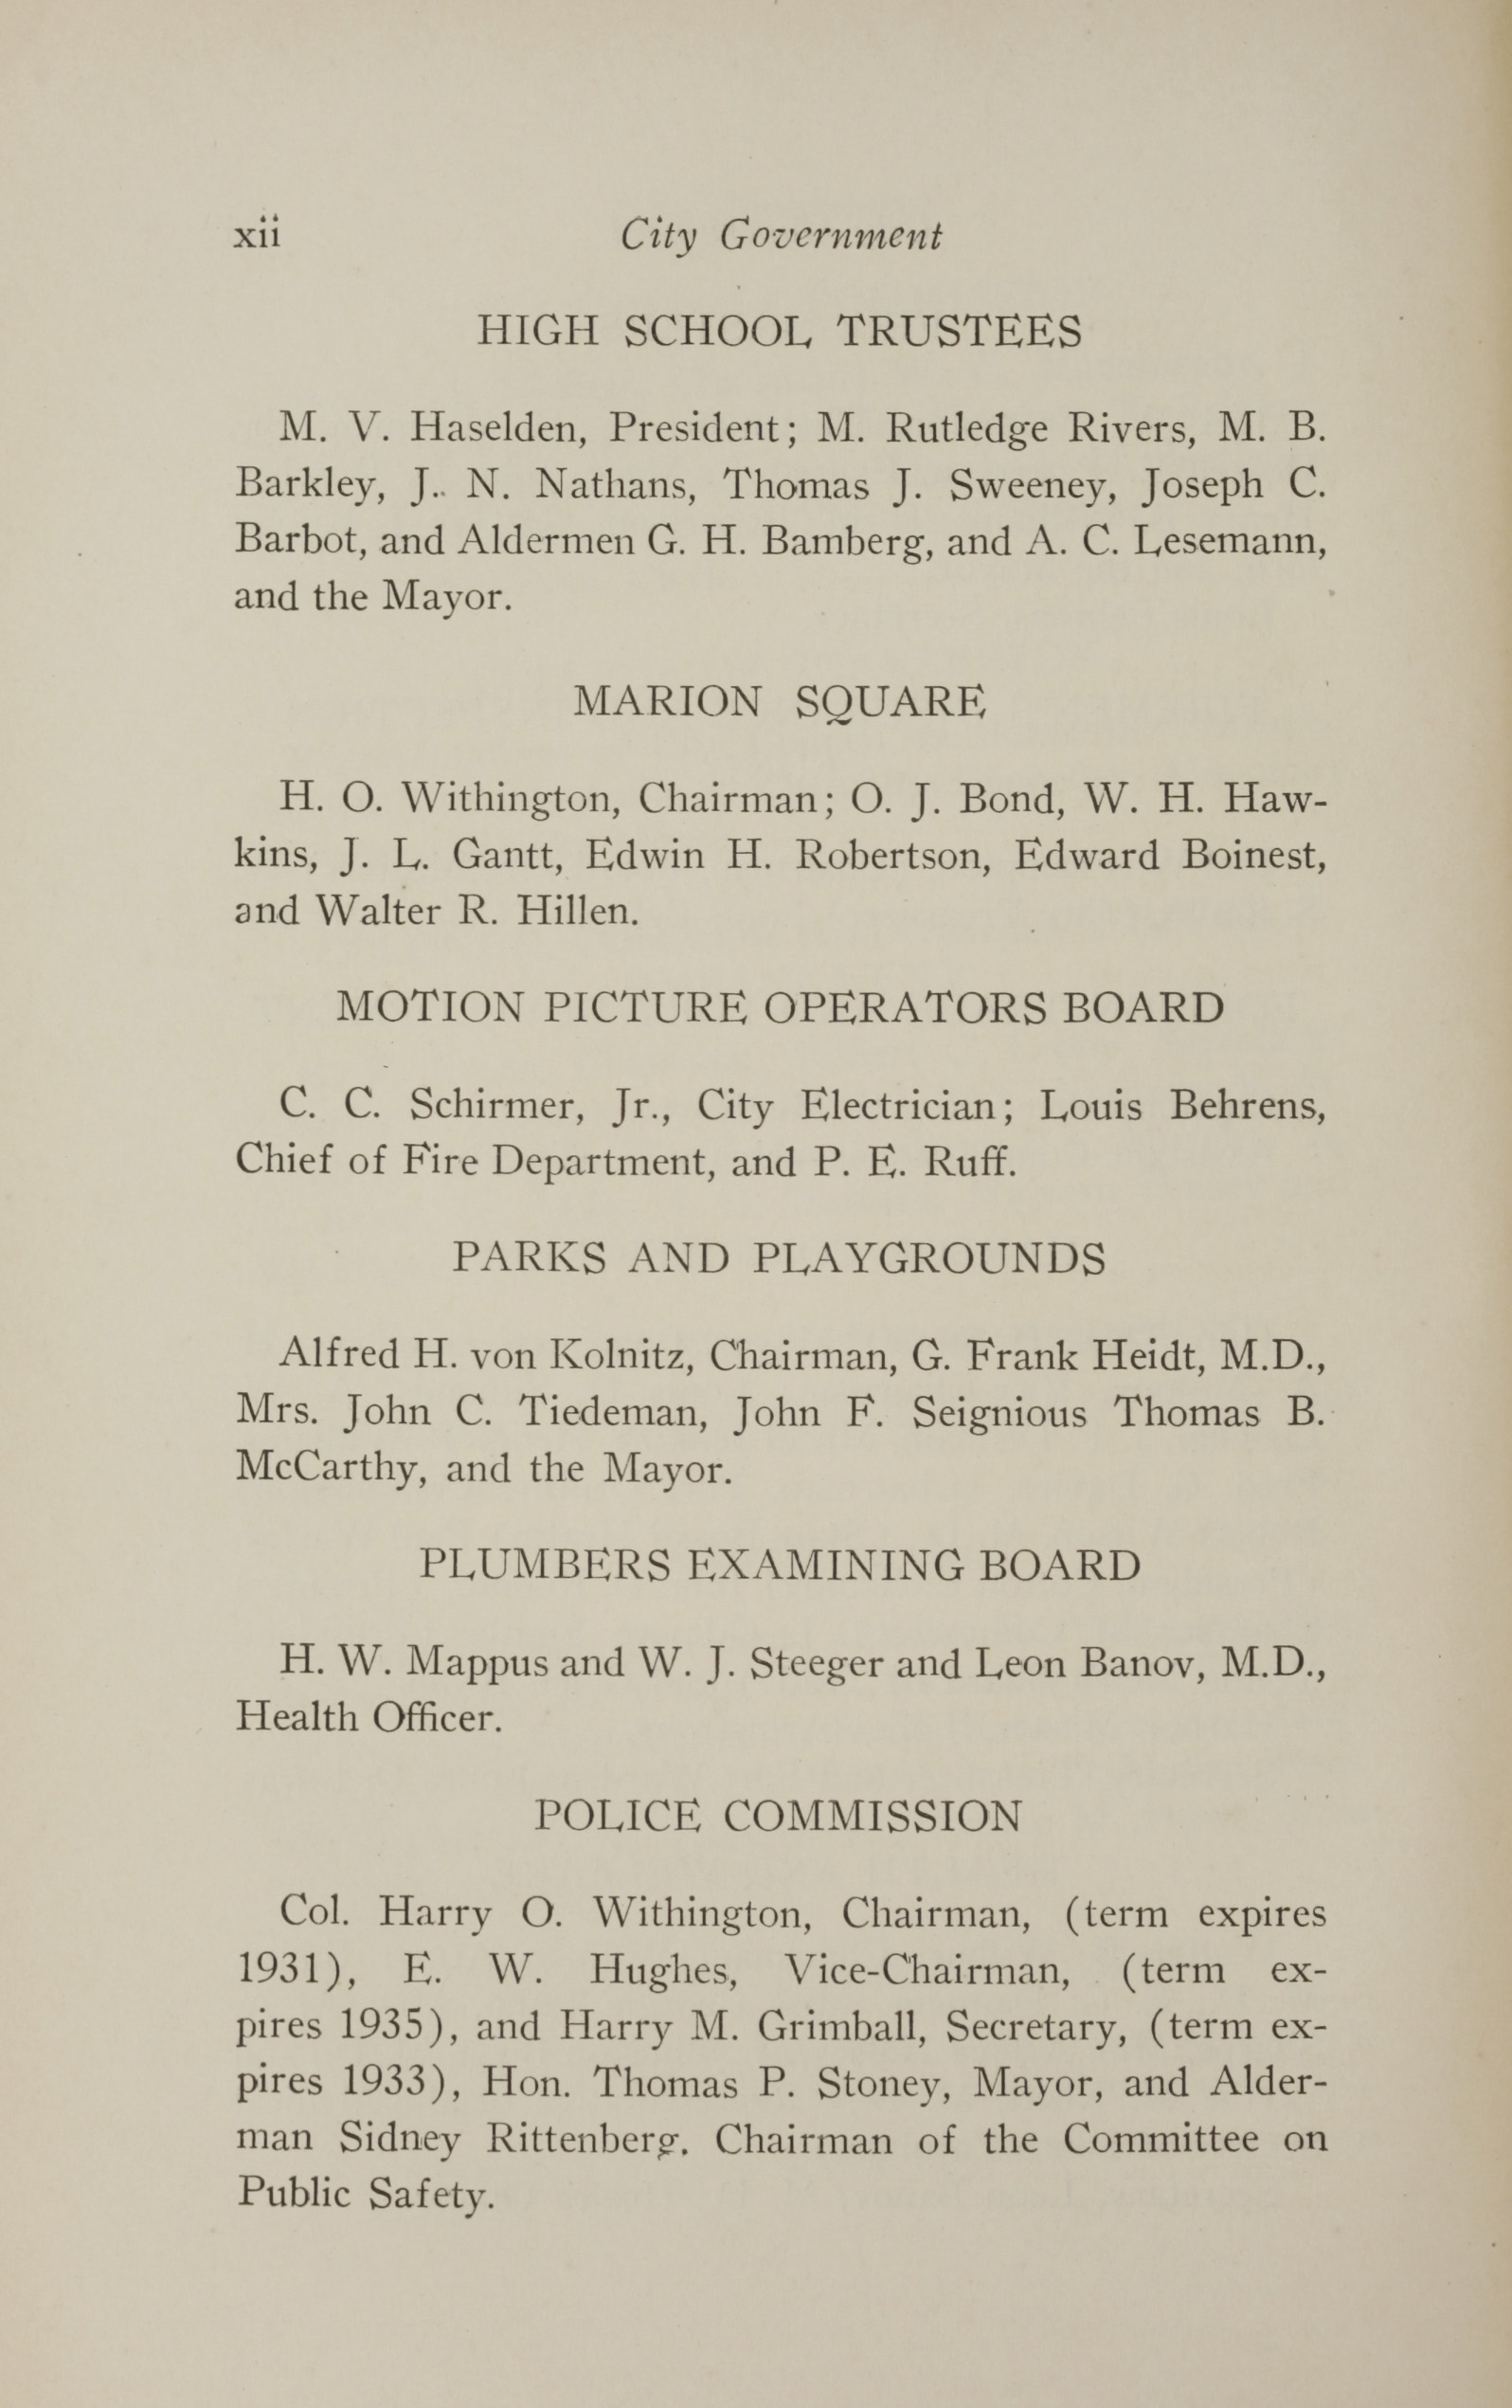 Charleston Yearbook, 1928, page xii